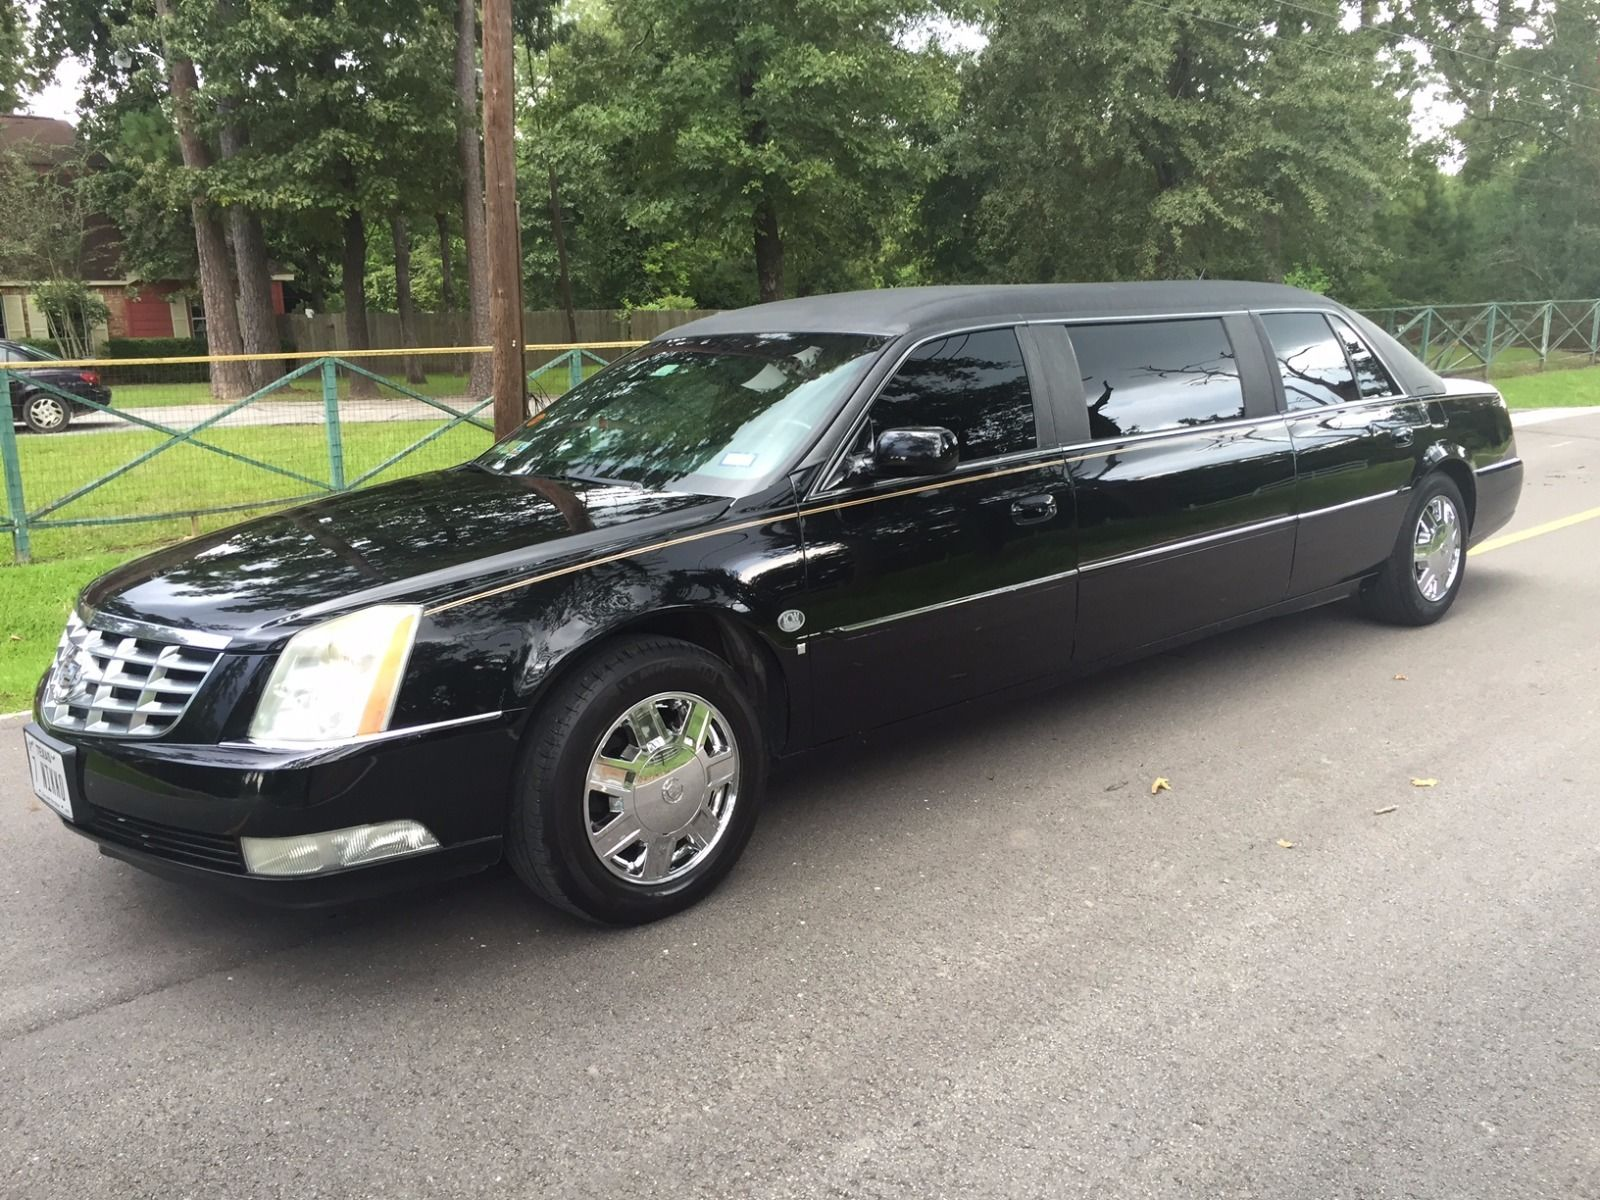 Used Cadillac Escalade For Sale >> Raised roof 2007 Cadillac Escalade limousine for sale